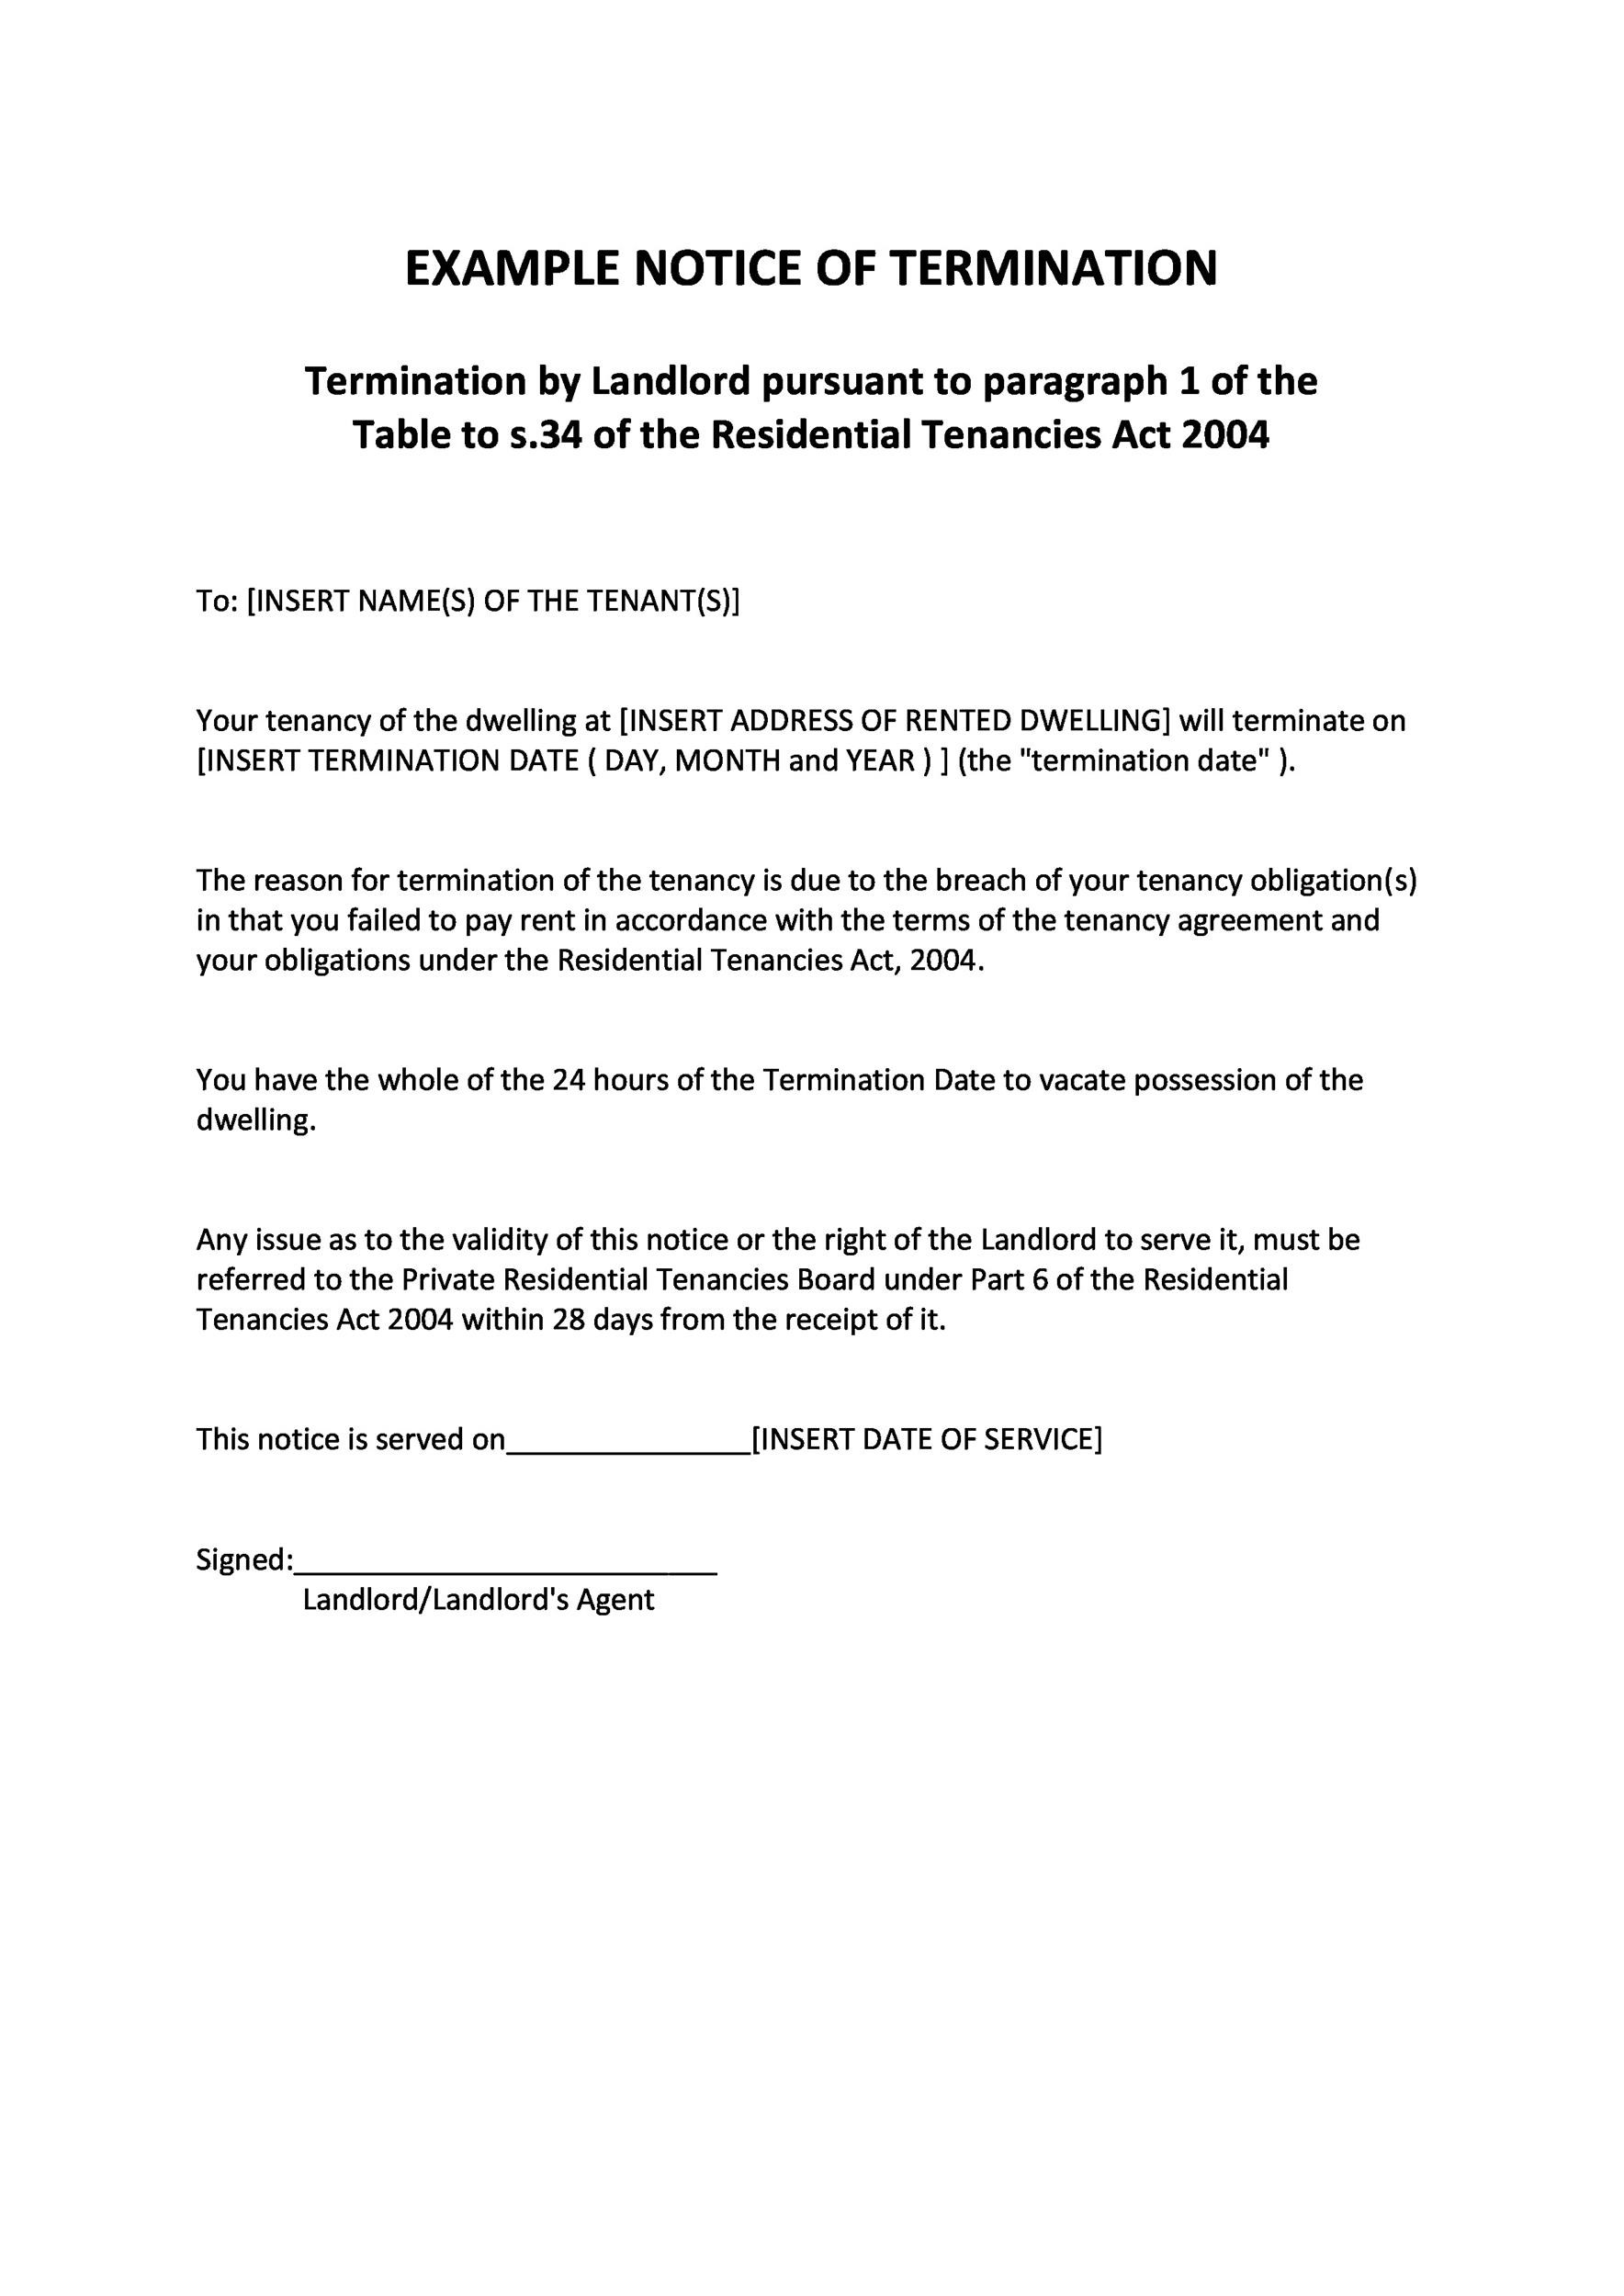 example notice of termination - Termination Letter For Tenant From Landlord